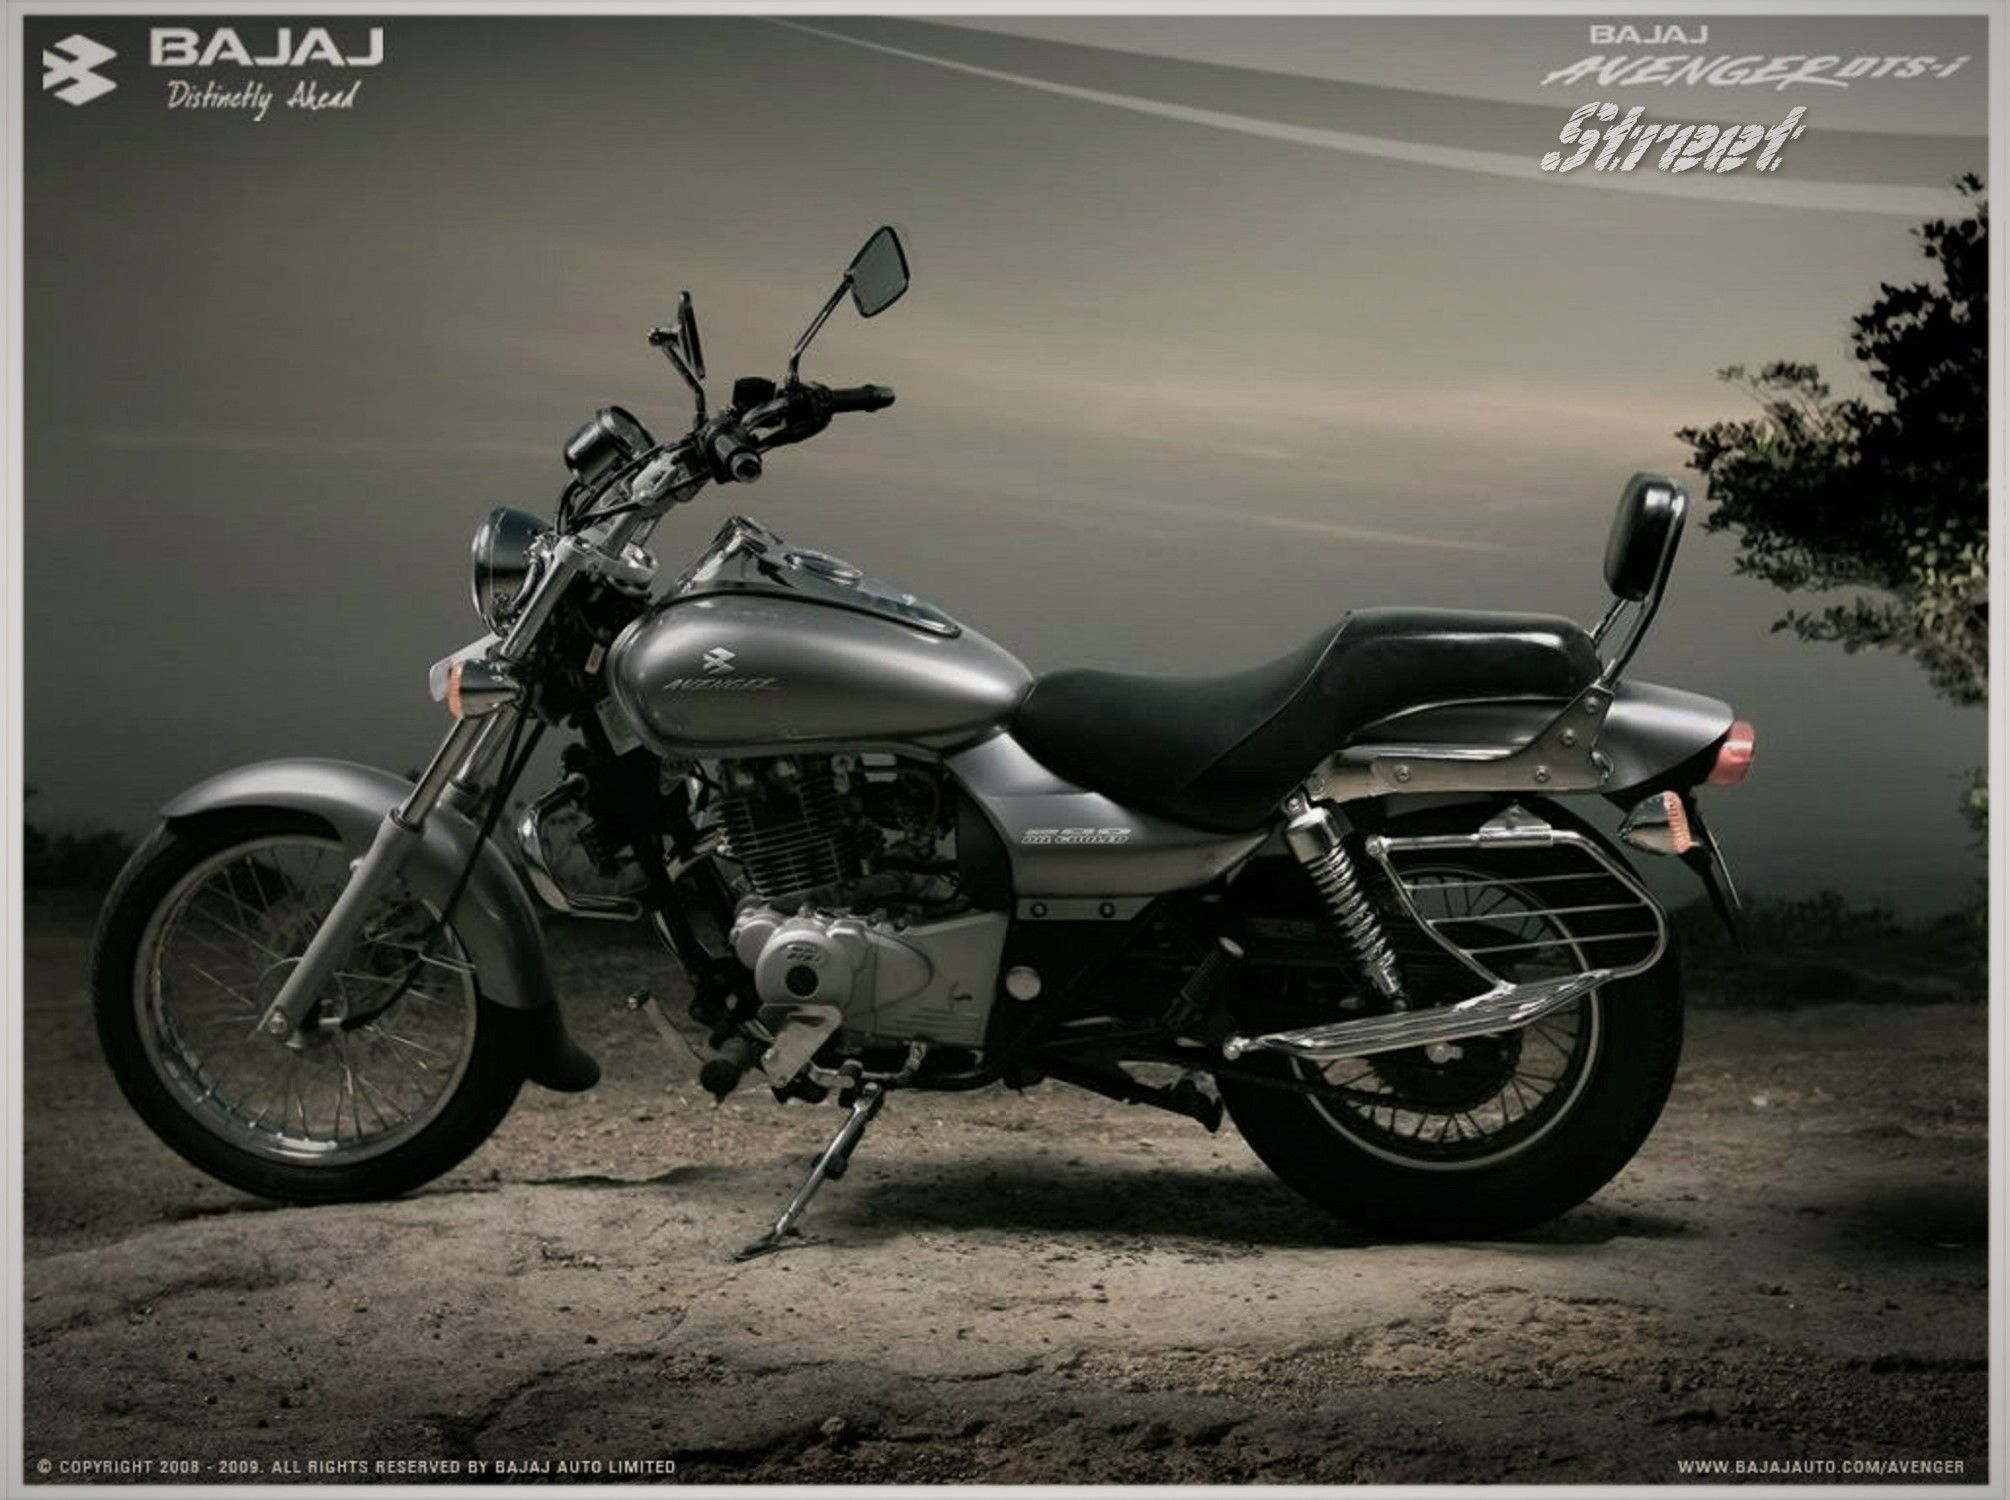 Are you looking for buy any one model of bajaj avenger bike view here full details like prices specification of bajaj avenger bike online